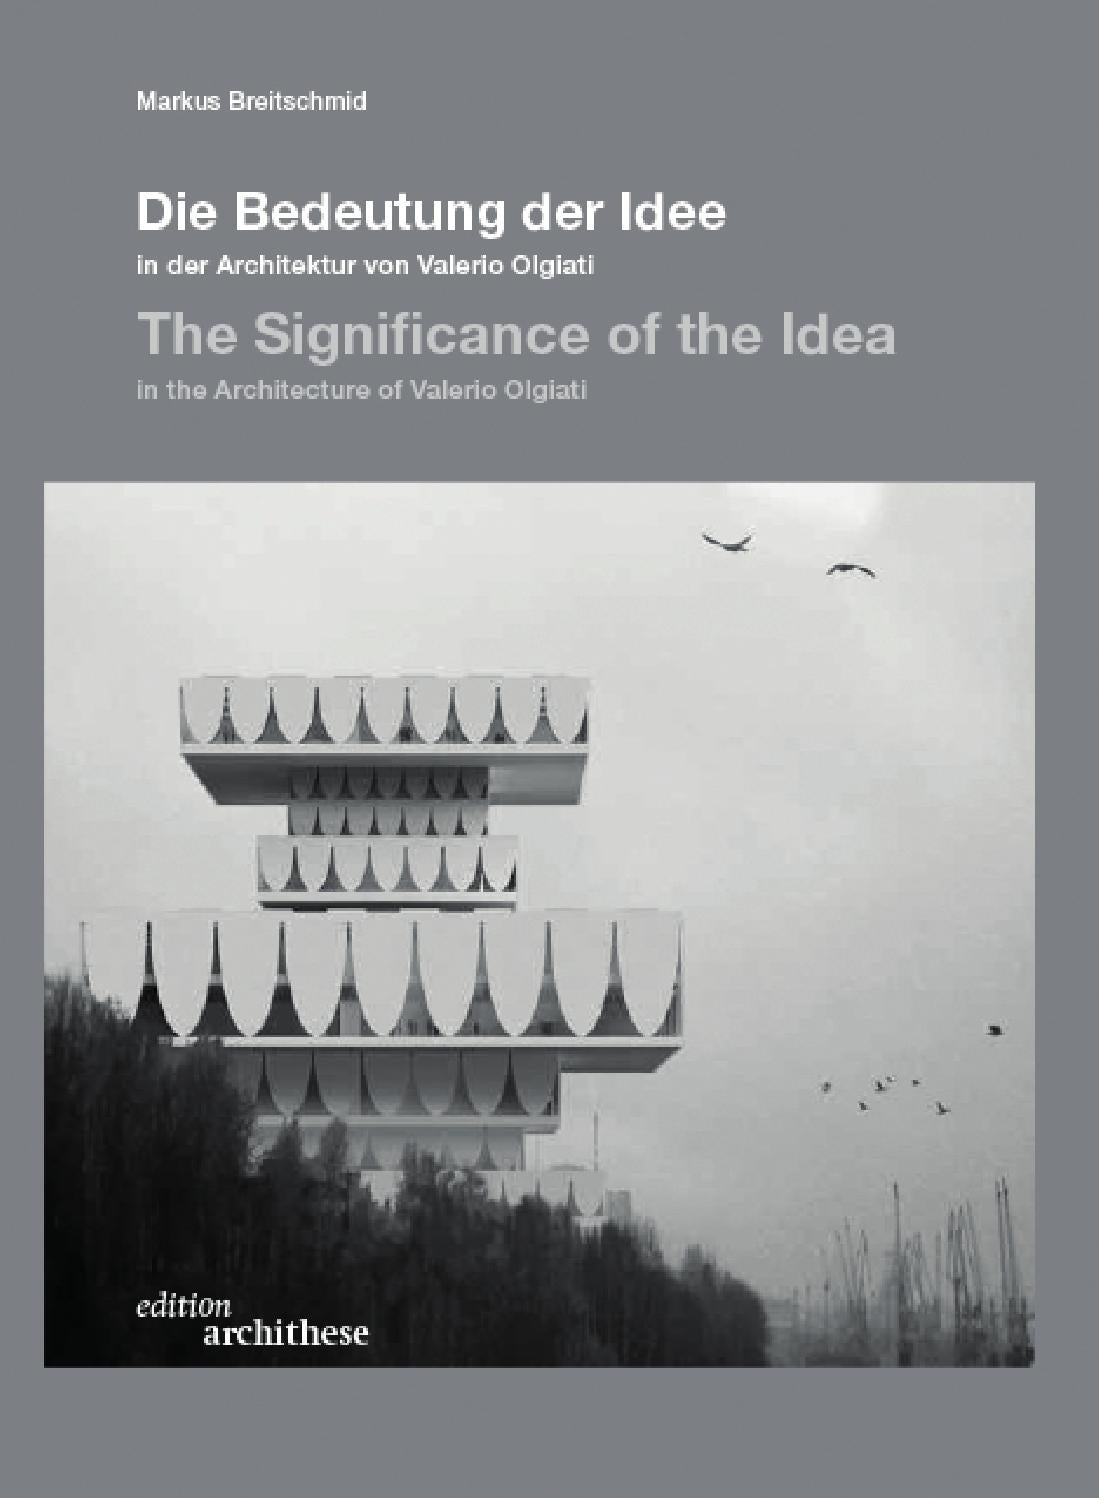 edition archithese 4 - Die Bedeutung der Idee / The Significance of ...